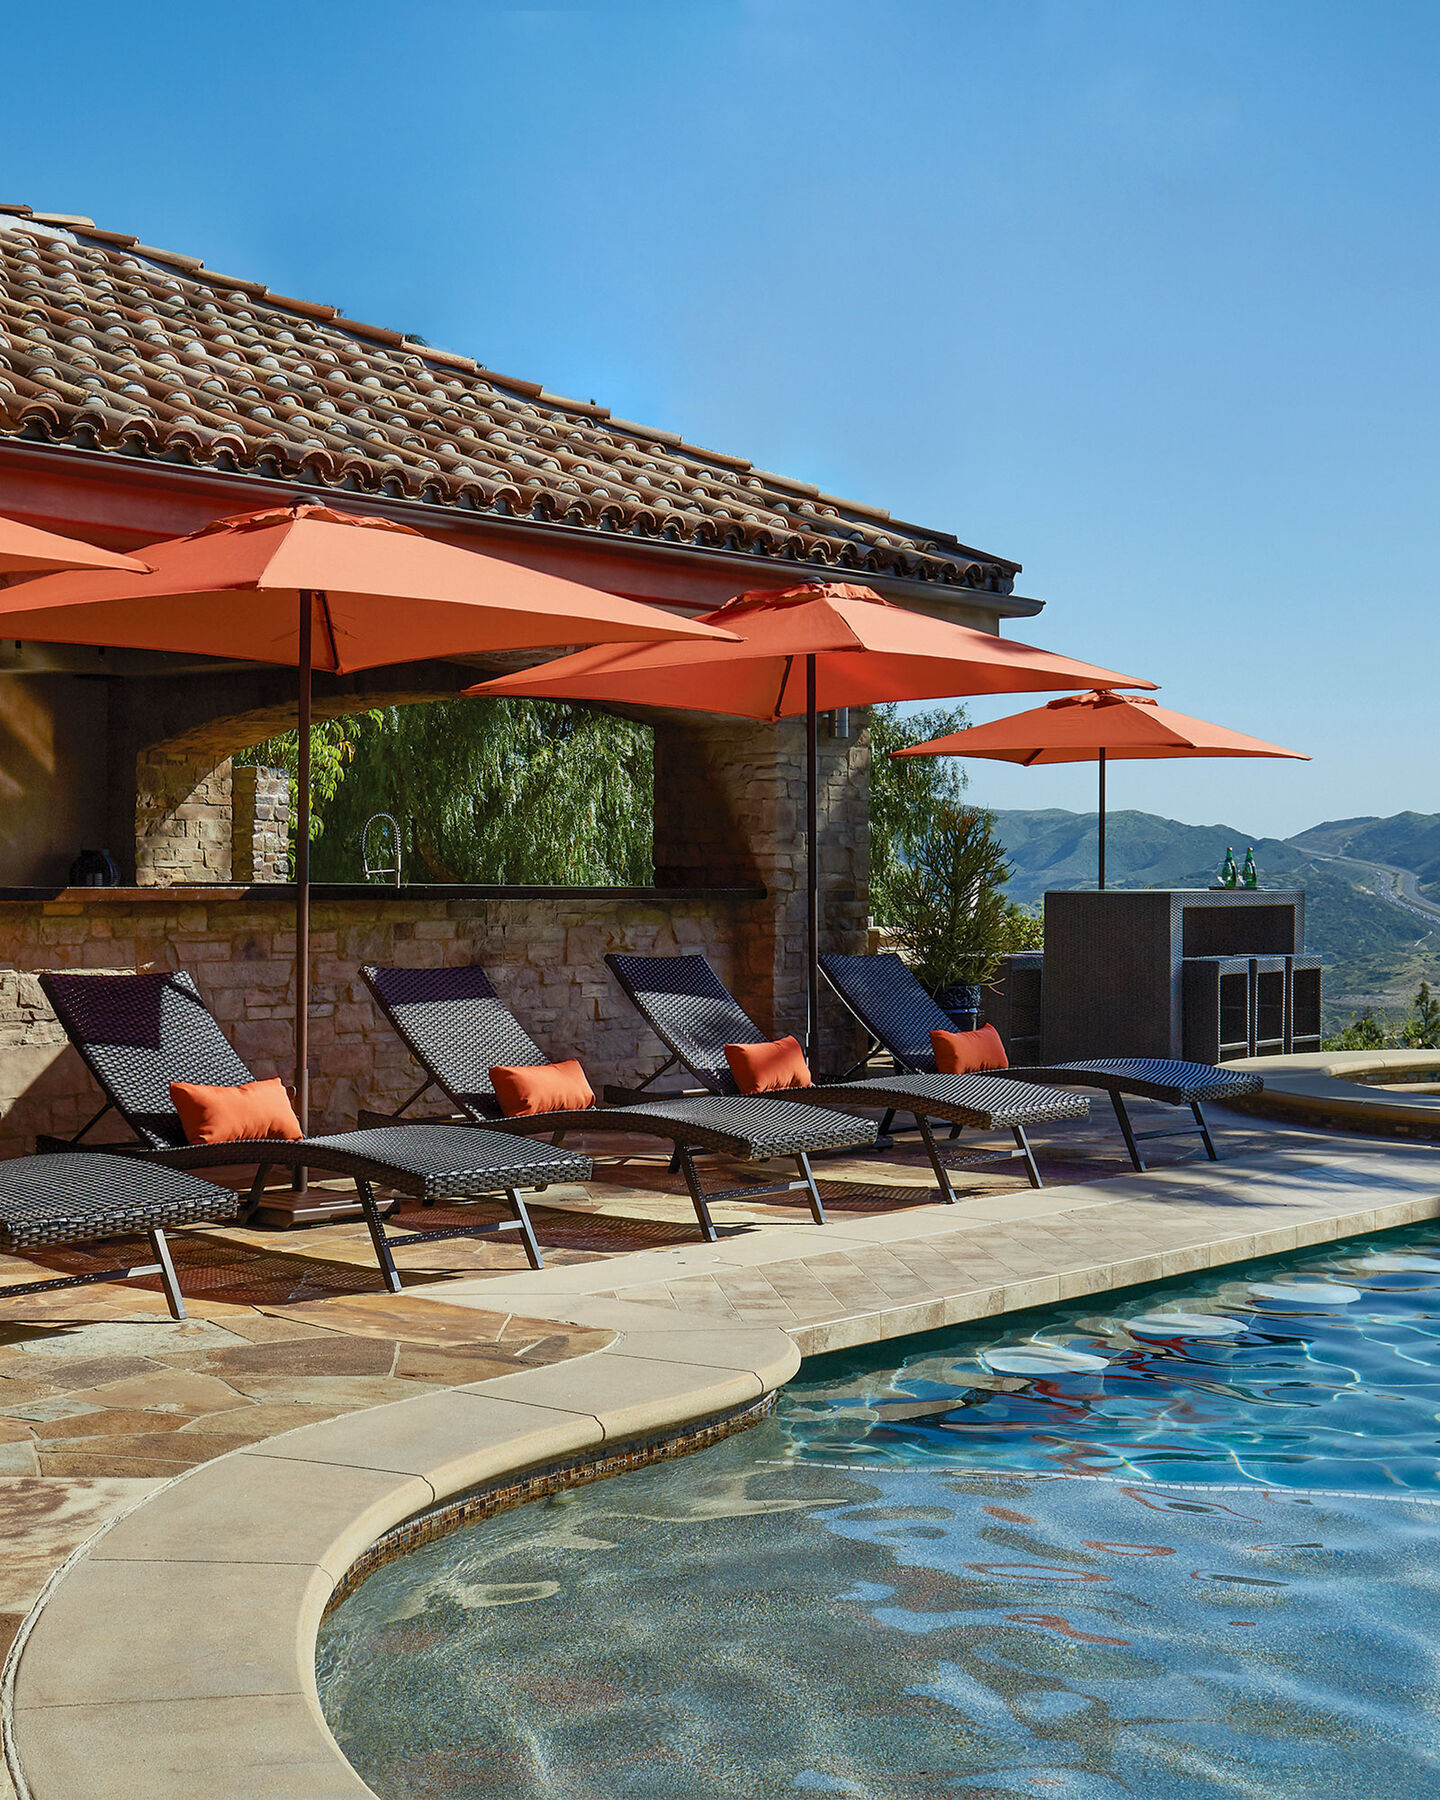 commercial patio furniture series of chaise lounges with umbrellas poolside